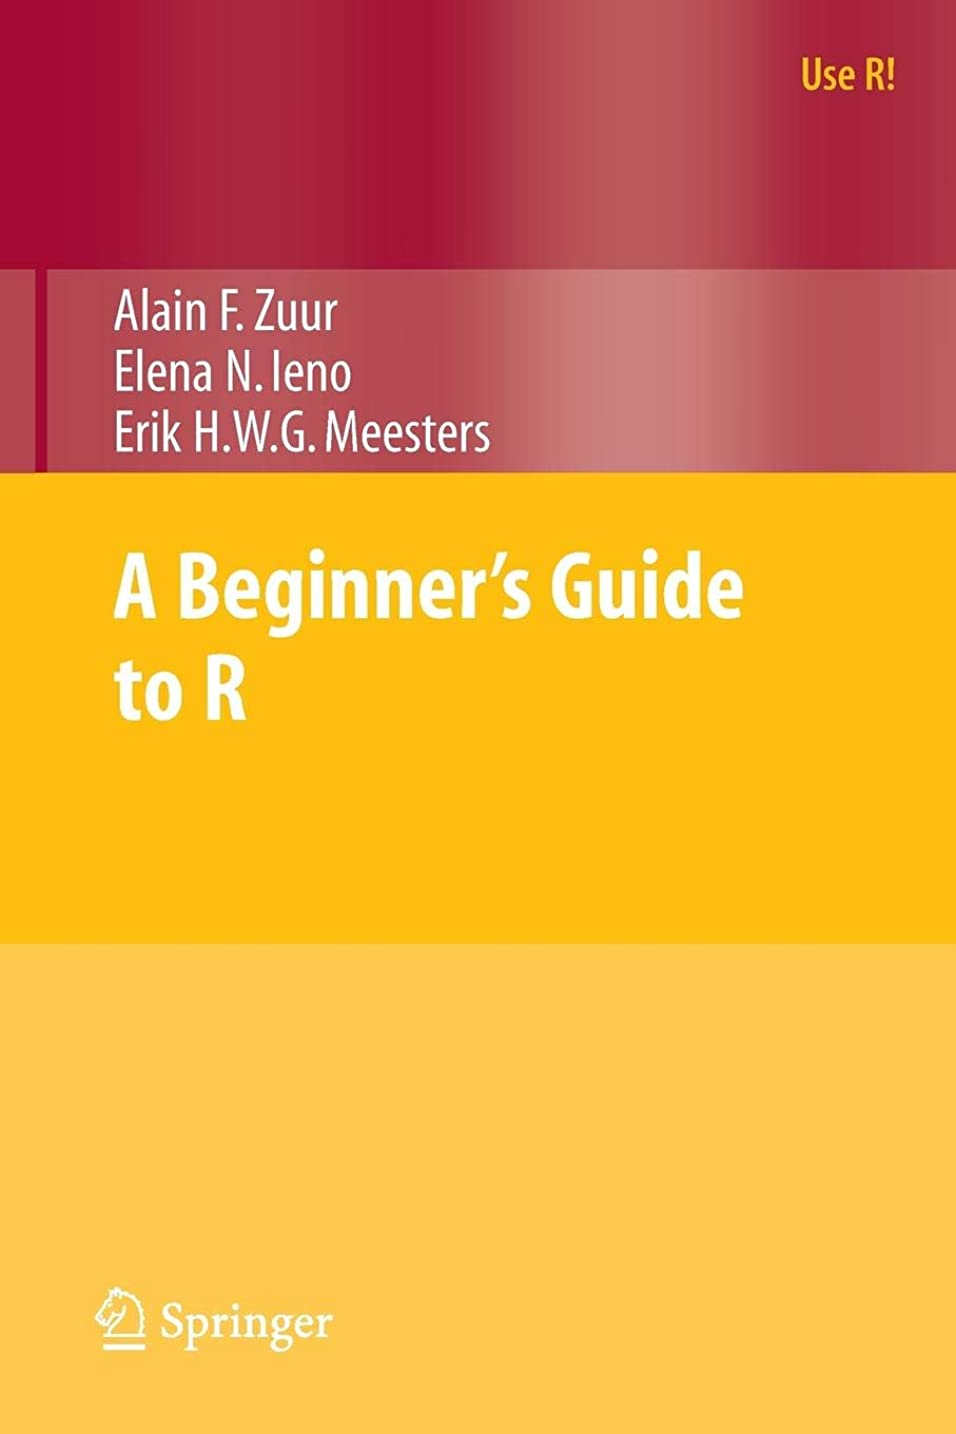 ラフト類似性発明A Beginner's Guide to R (Use R!)